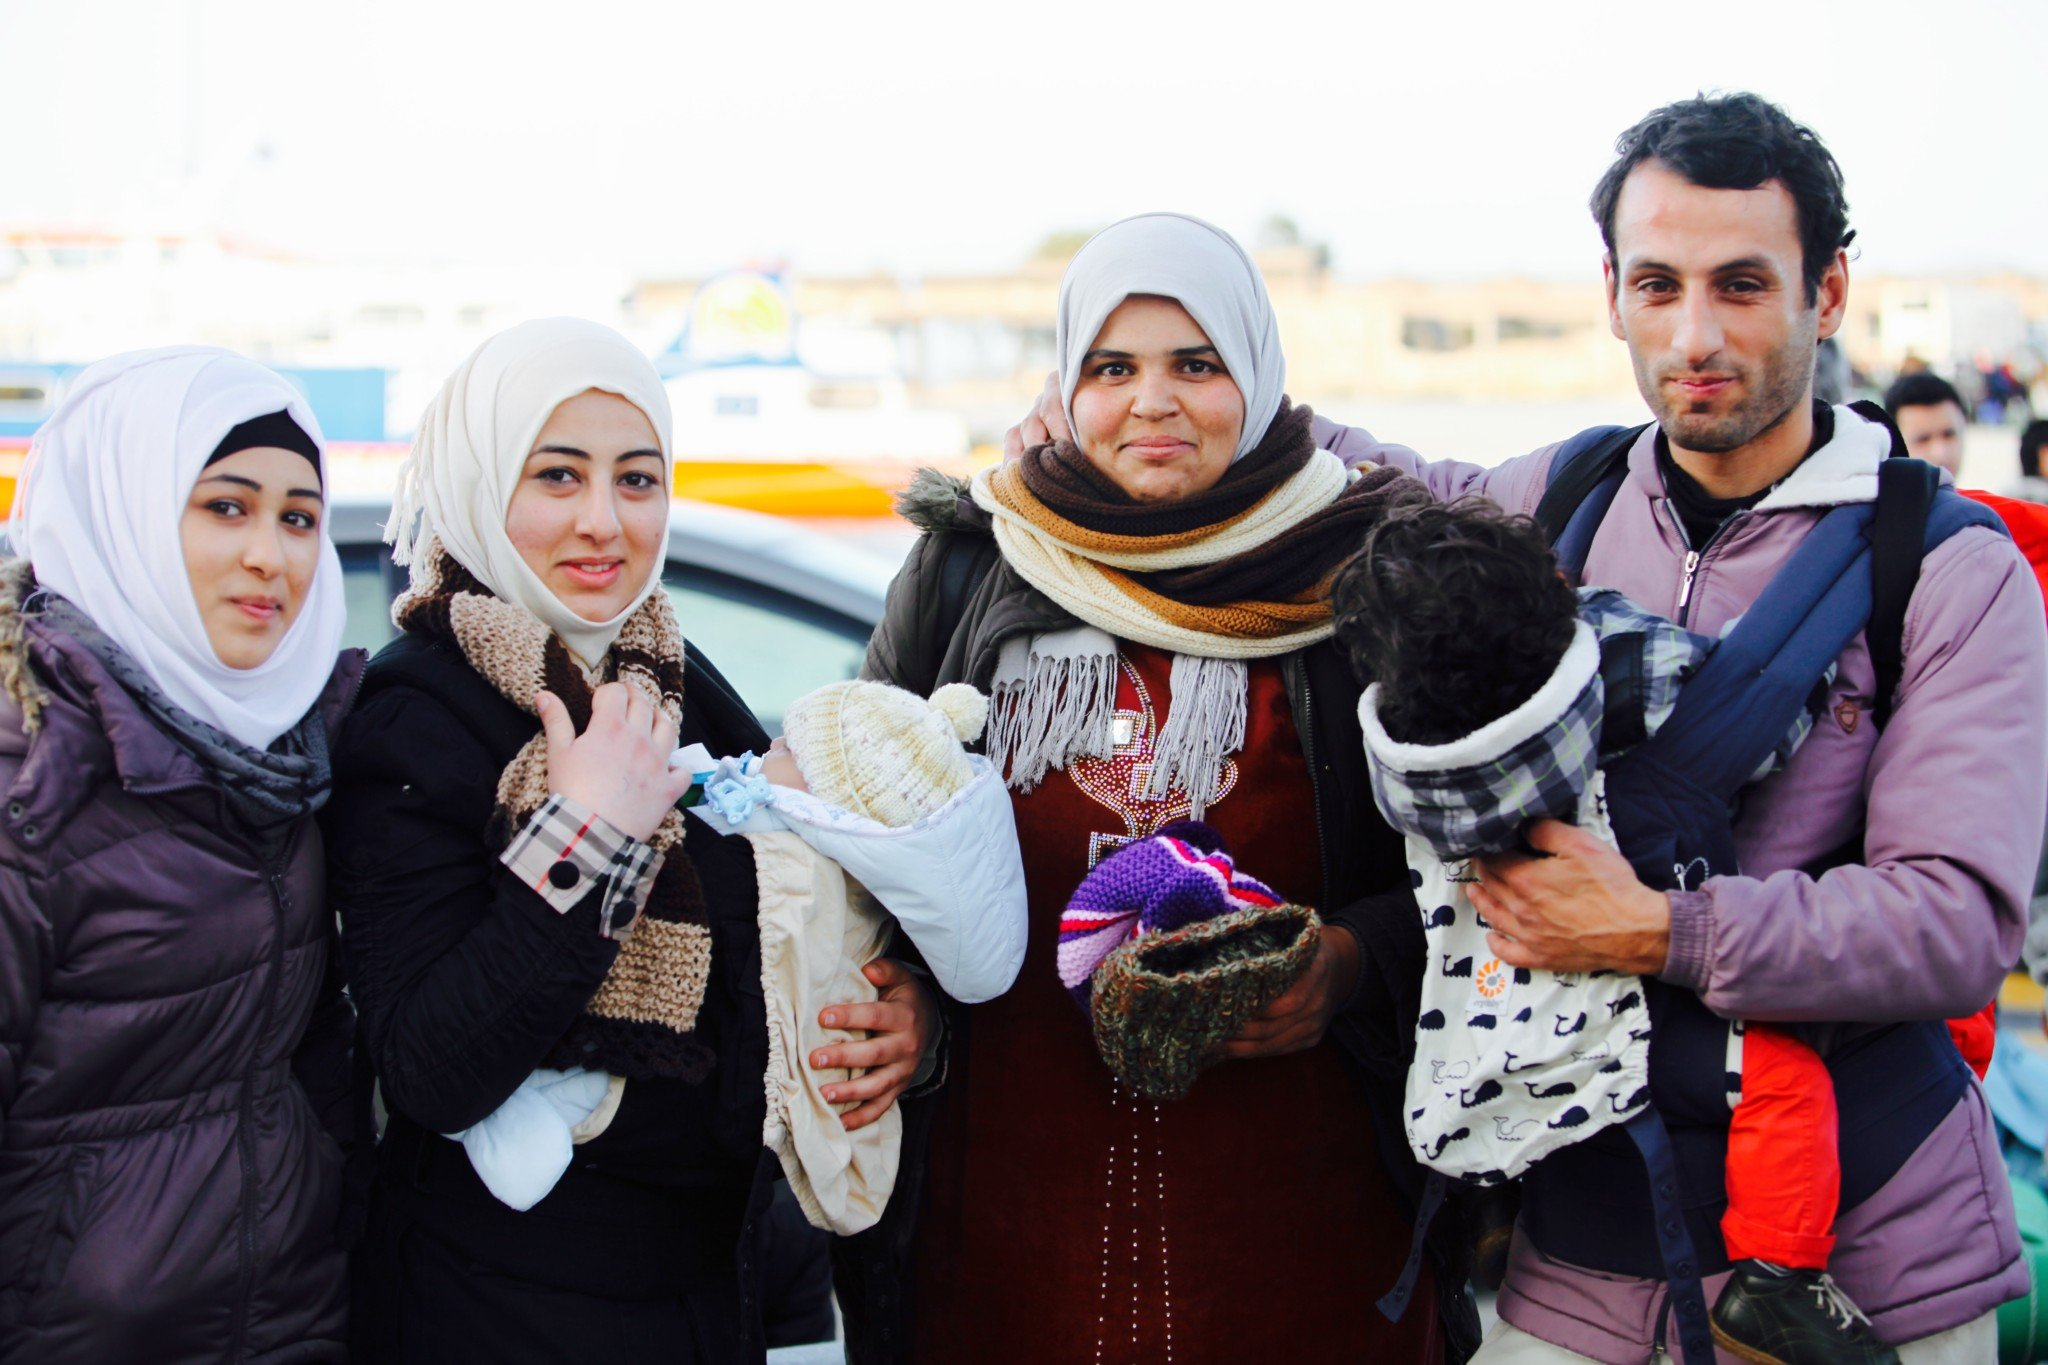 5 Misconceptions about Refugees